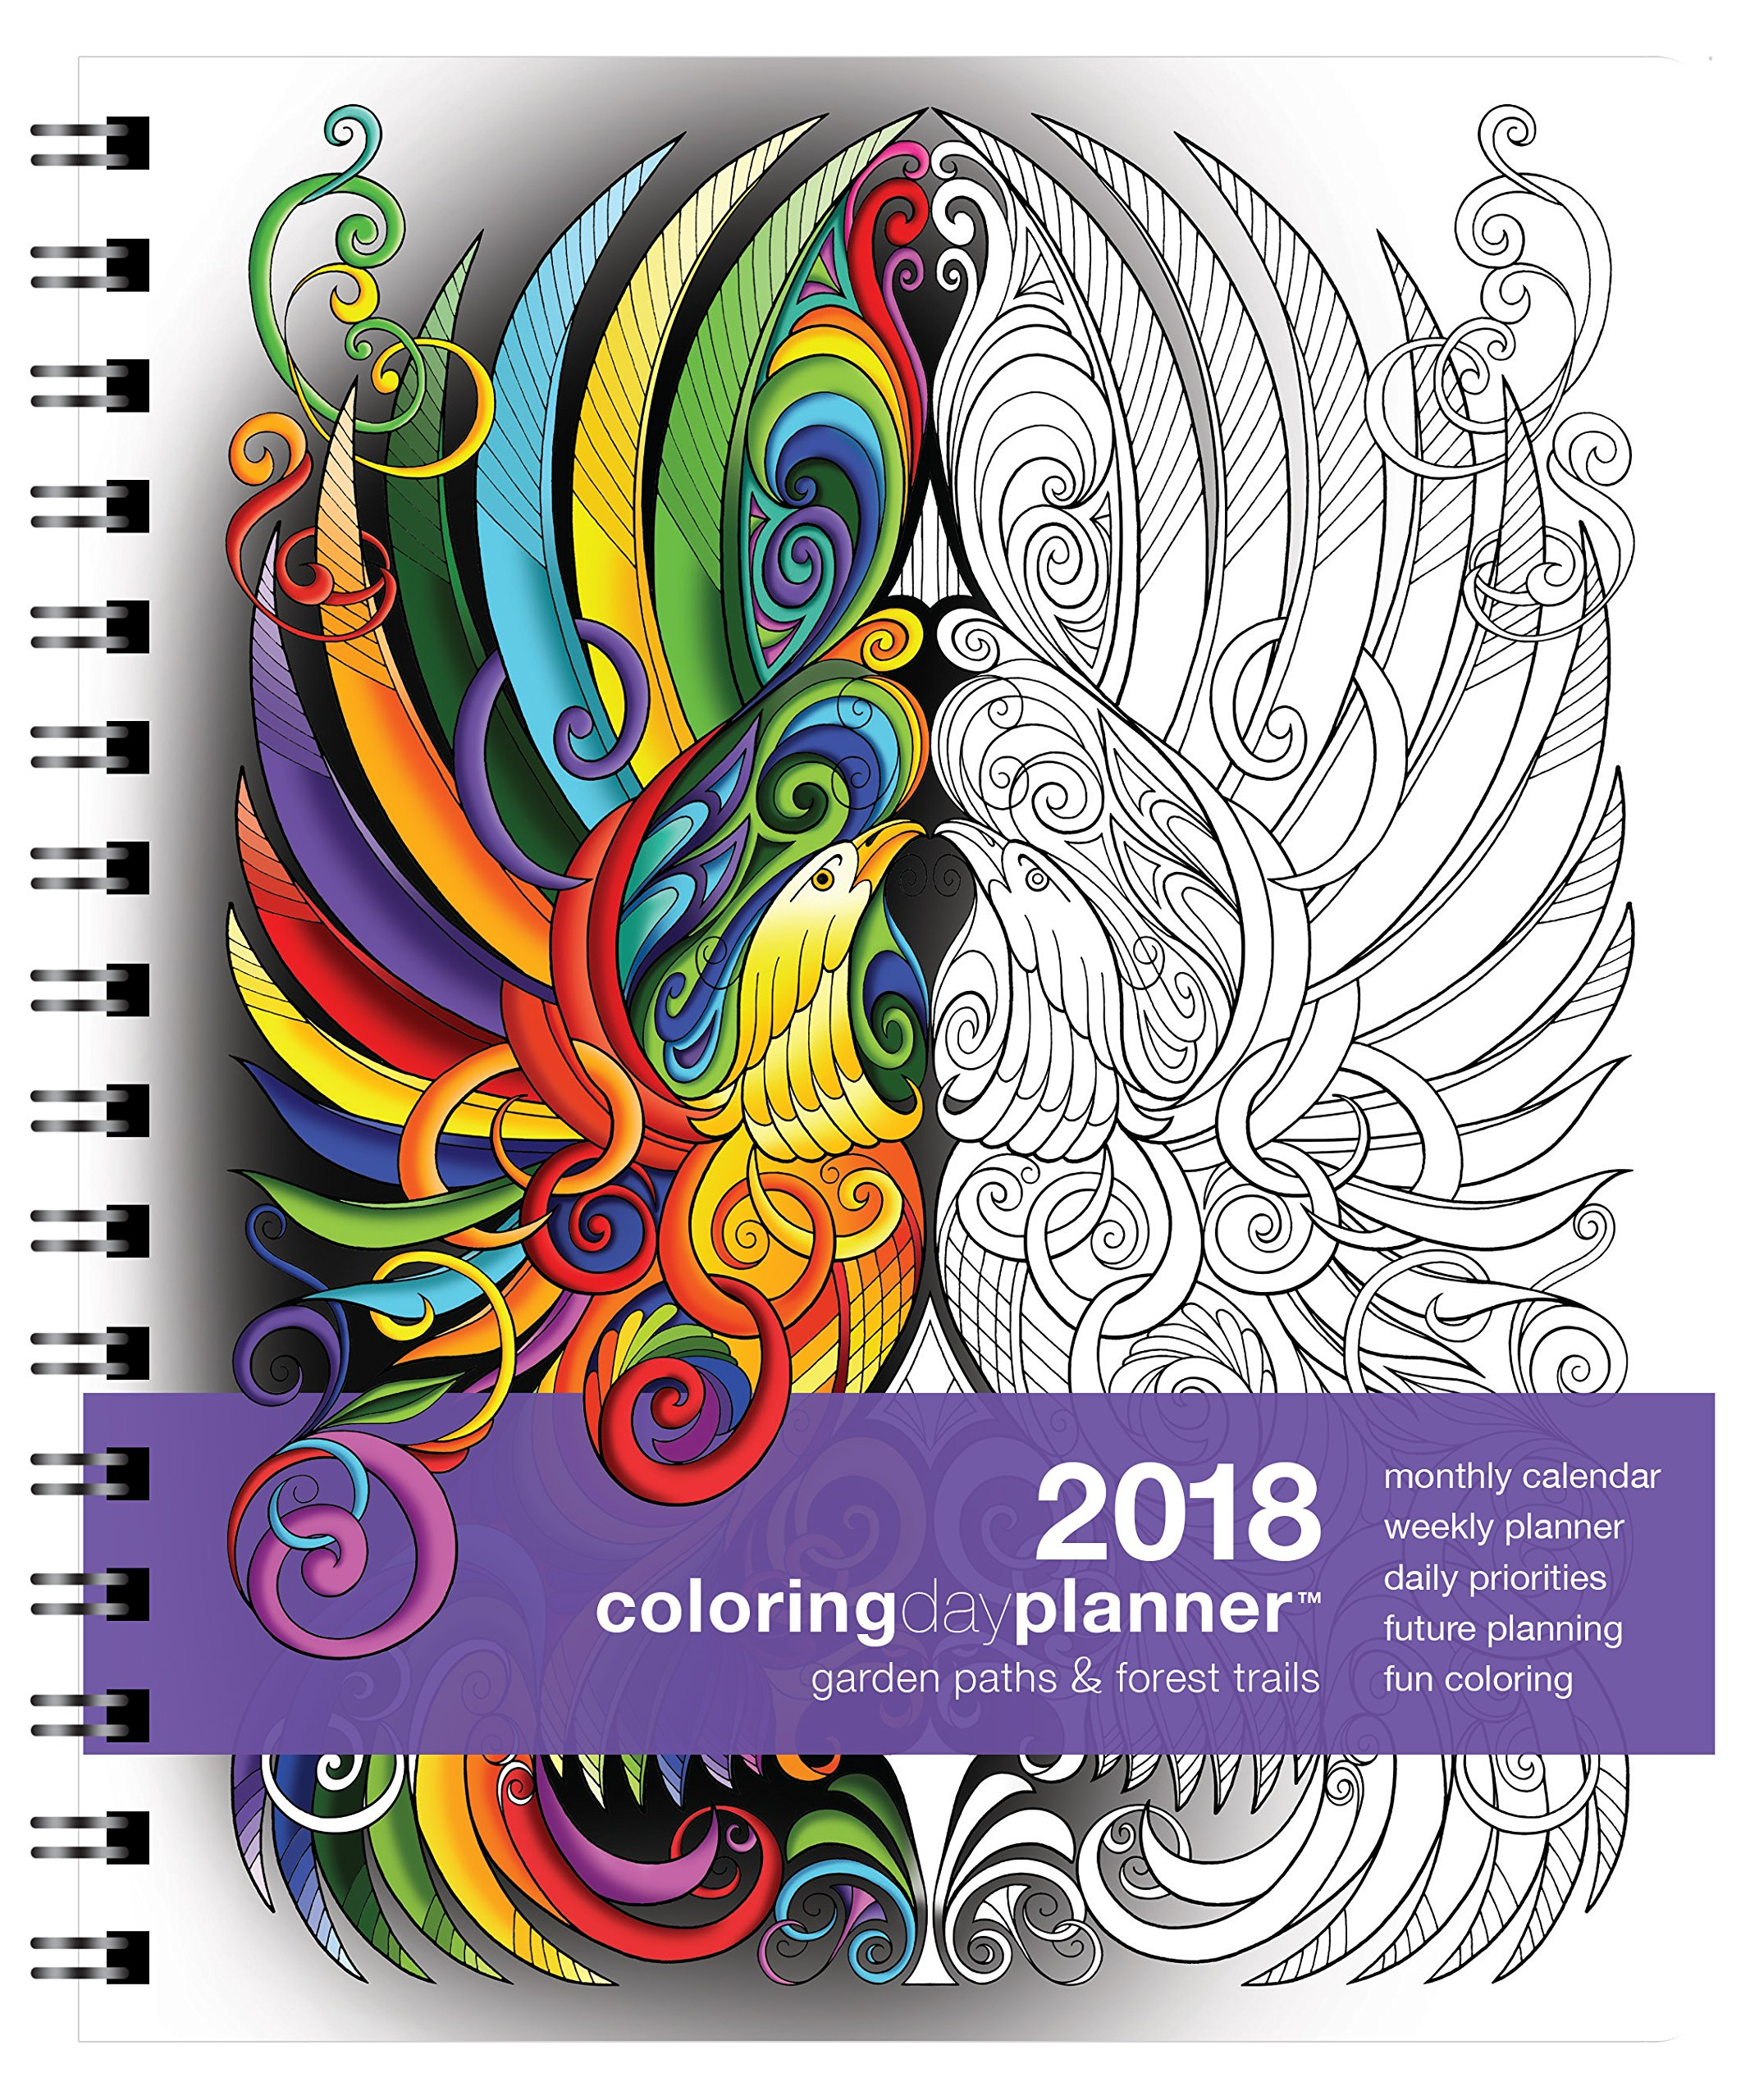 Action Publishing Coloring Day Planner · 2018 Garden Paths & Forest Trails · Daily and Weekly Scheduling and Goal Planning, with Nature and Botanical Coloring Pages · Jan - Dec (7 x 8.5 inches)